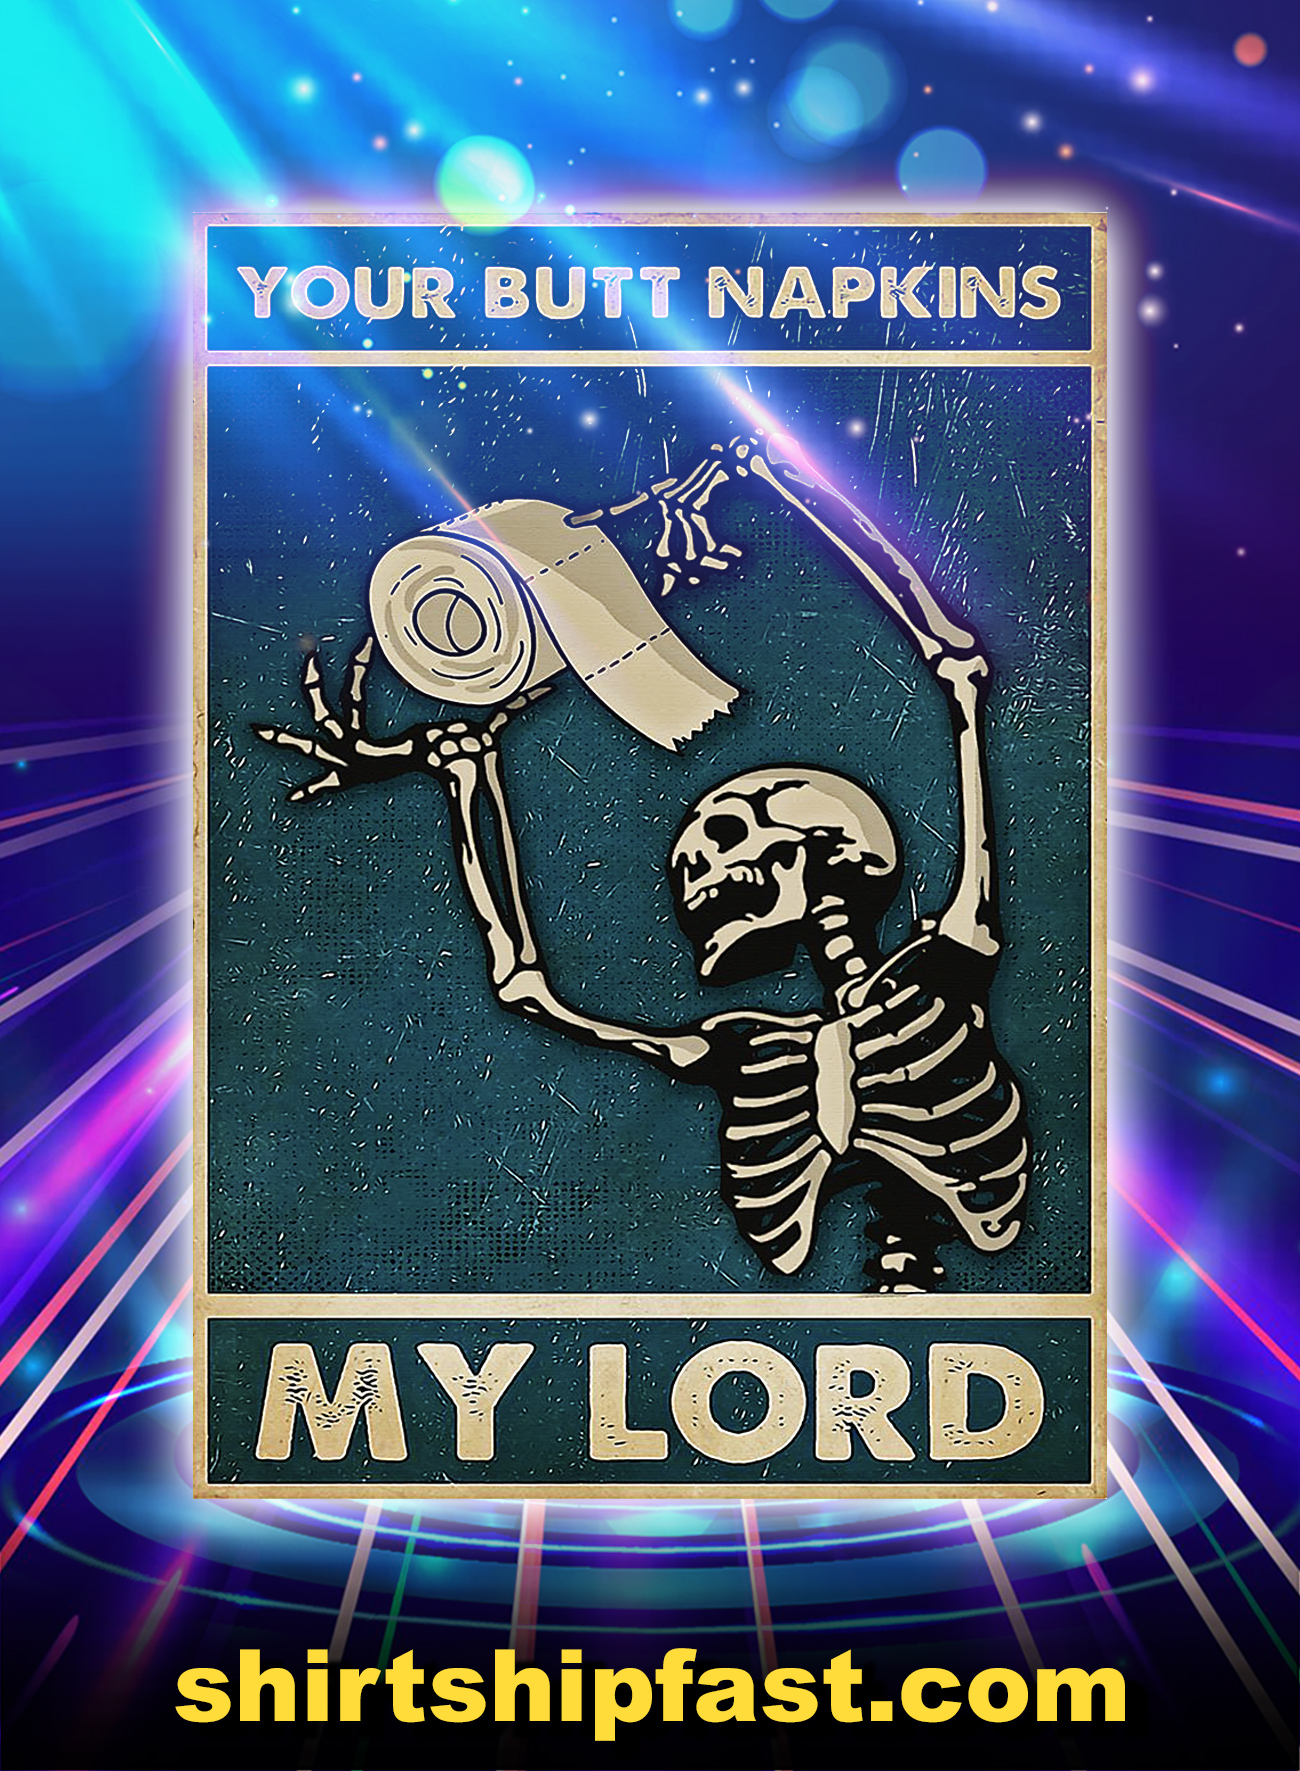 Bathroom Skull Your Butt Napkins My Lord Poster - A4